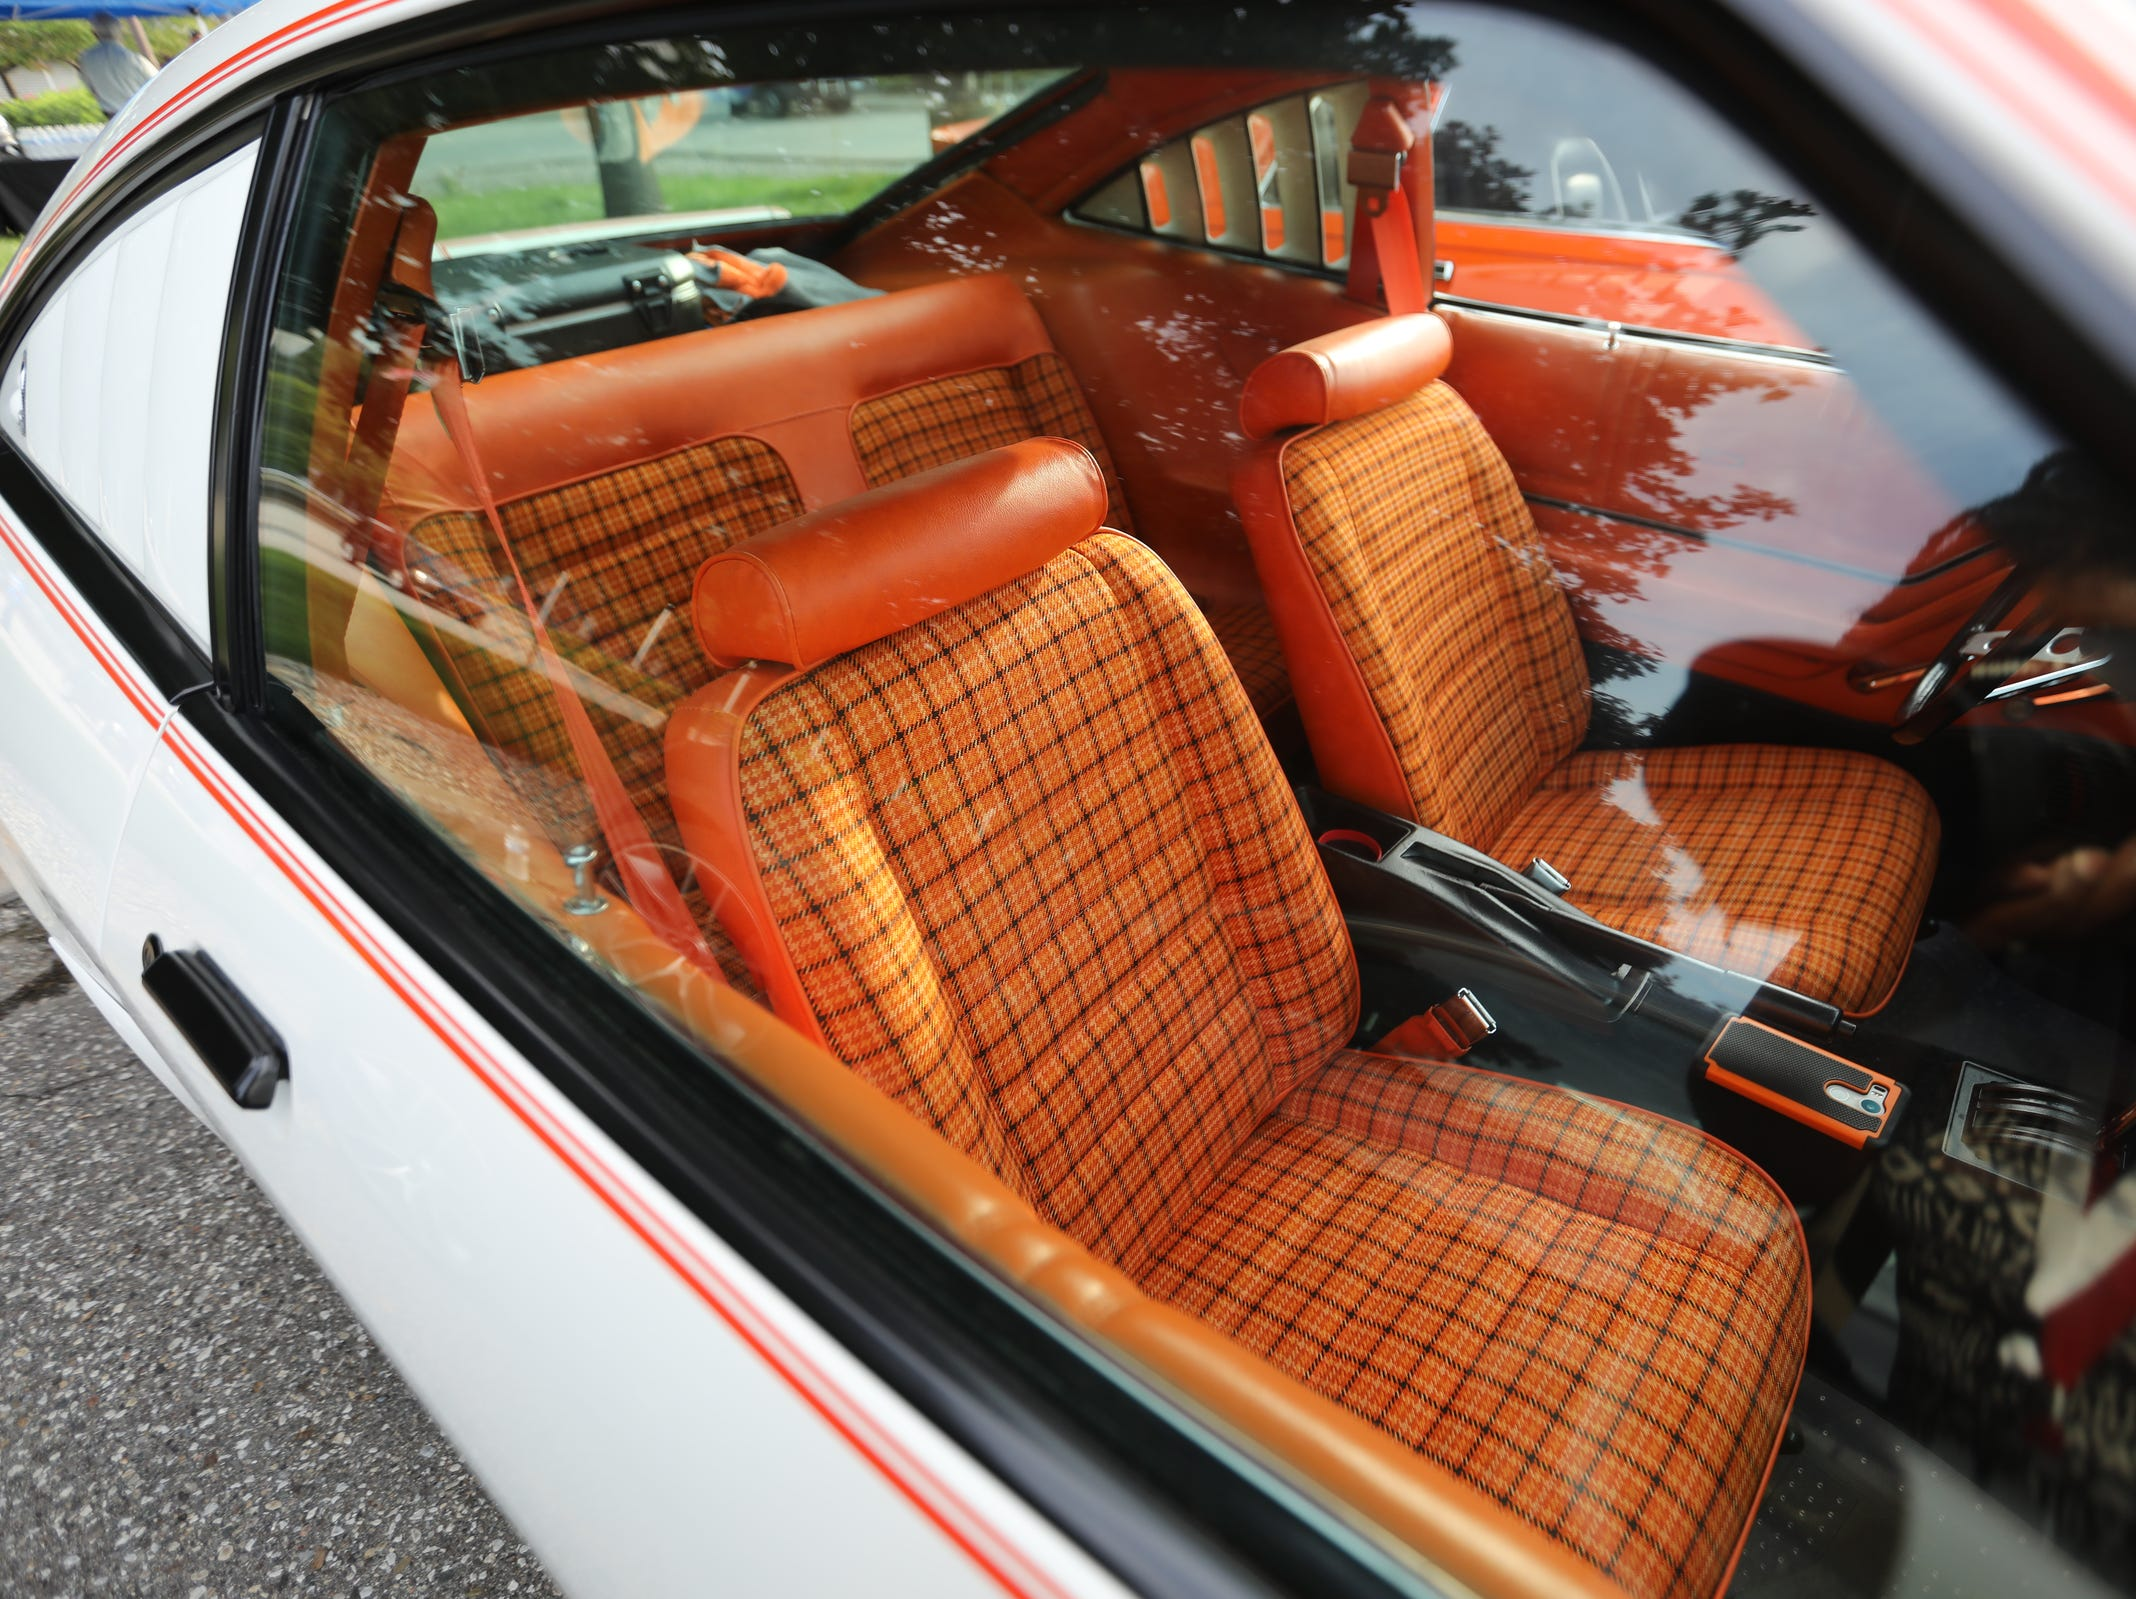 The original interior of a 1978 Ford Mustang Cobra seen during a Ford event celebrating the 10,000,000 Mustang built at the Ford Motor Company World Headquarters in Dearborn on Wed., Aug 8, 2018.